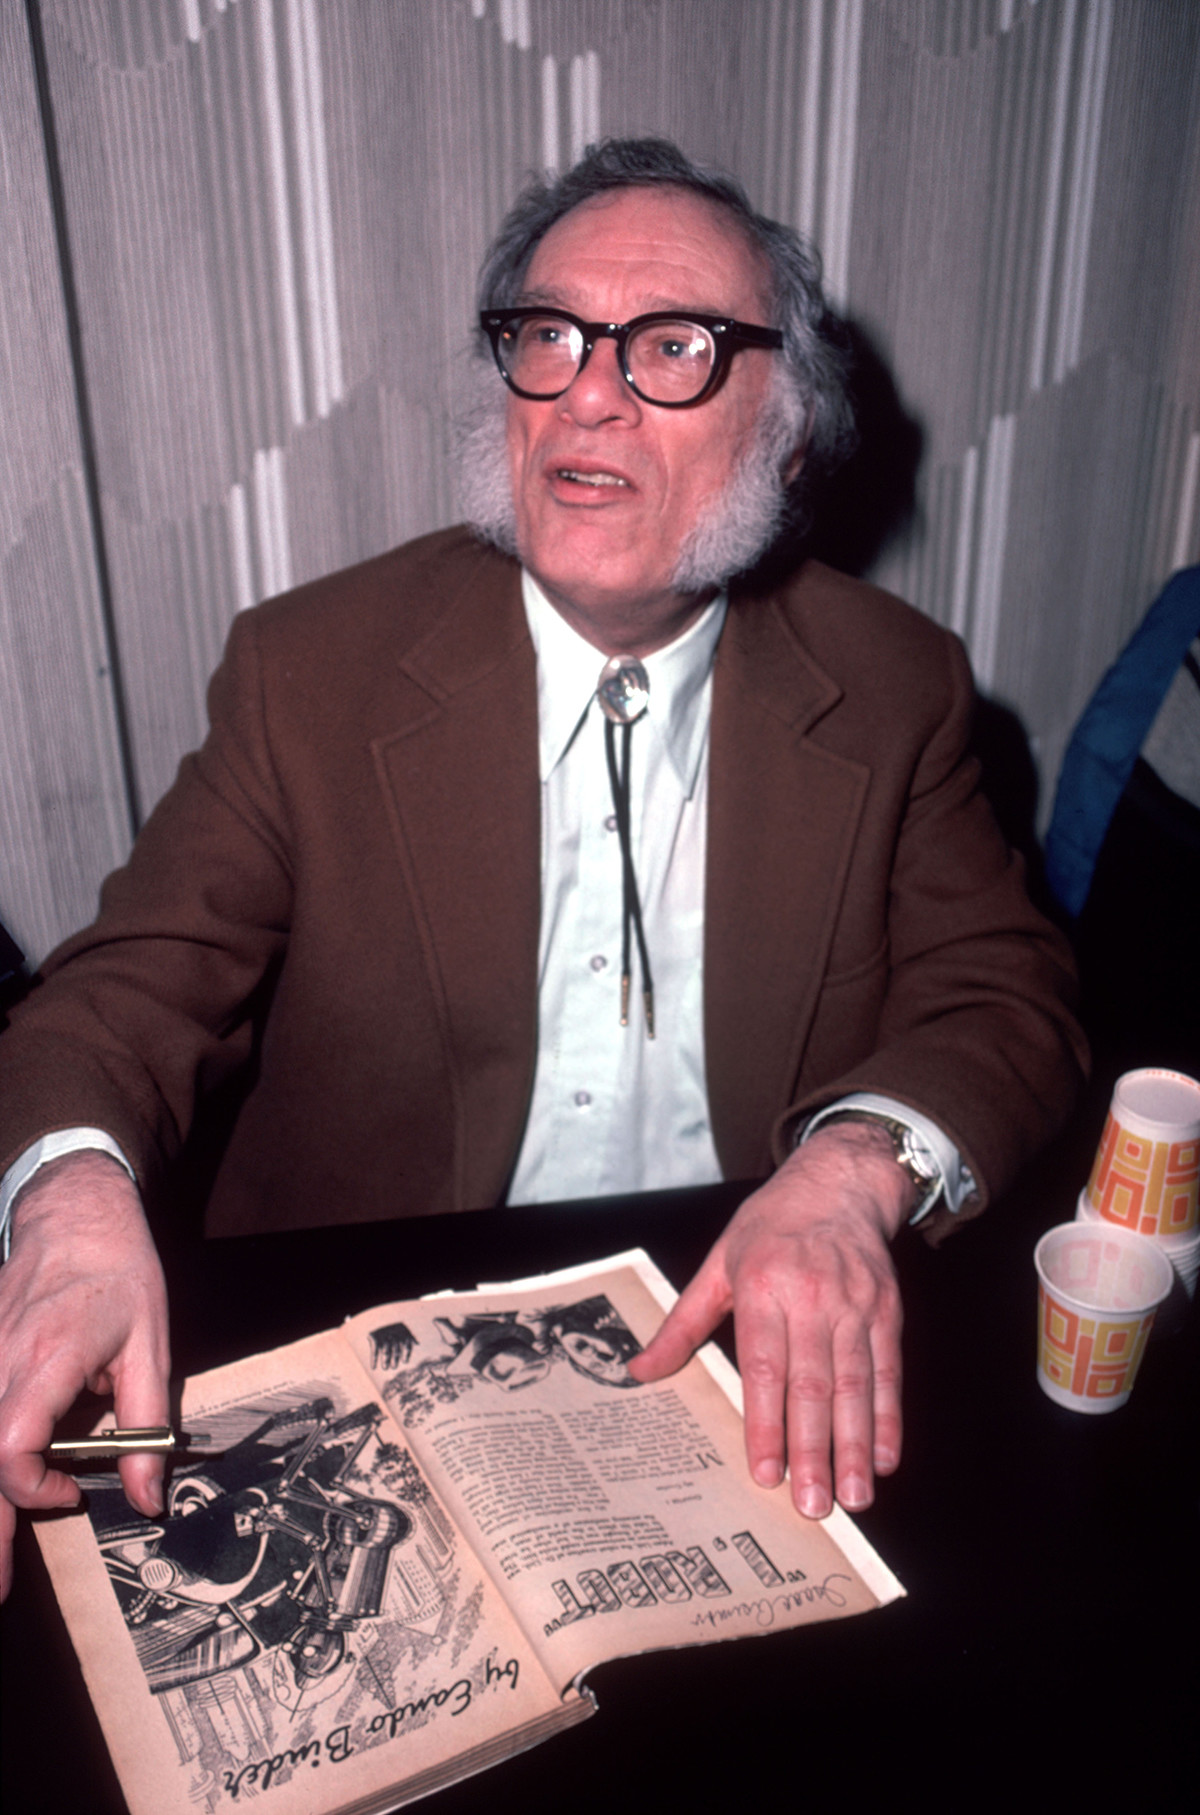 The year 2020 marks the 100th anniversary of the birth of Isaac Asimov.